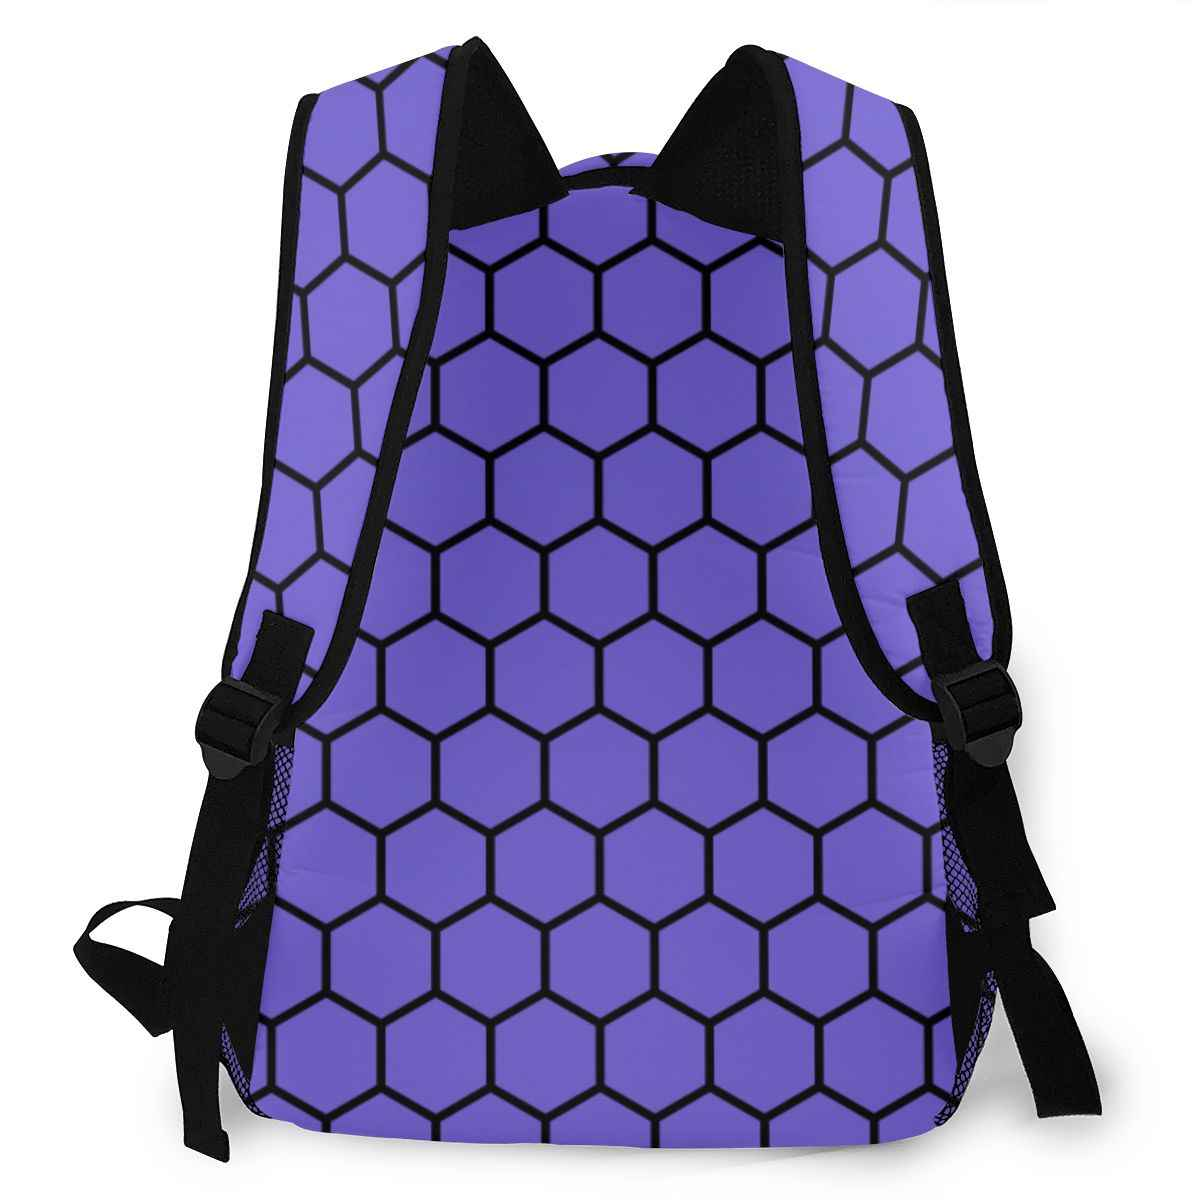 Honey Comb Beehive Pattern Kids Back To School Backpack Book Bag For Boys Girls